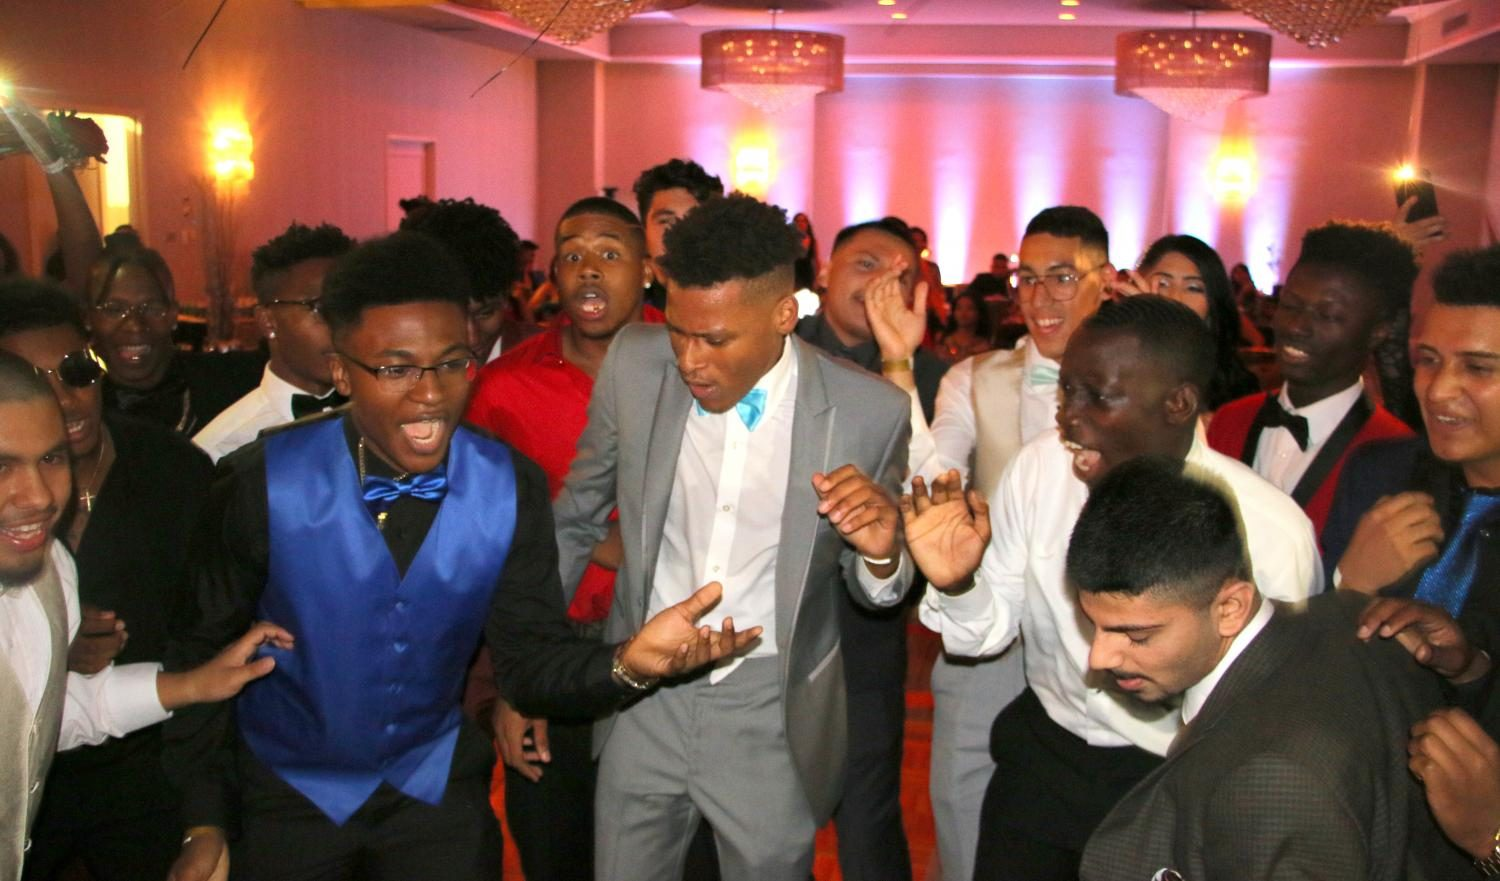 Seniors at the Prom, dancing the night away